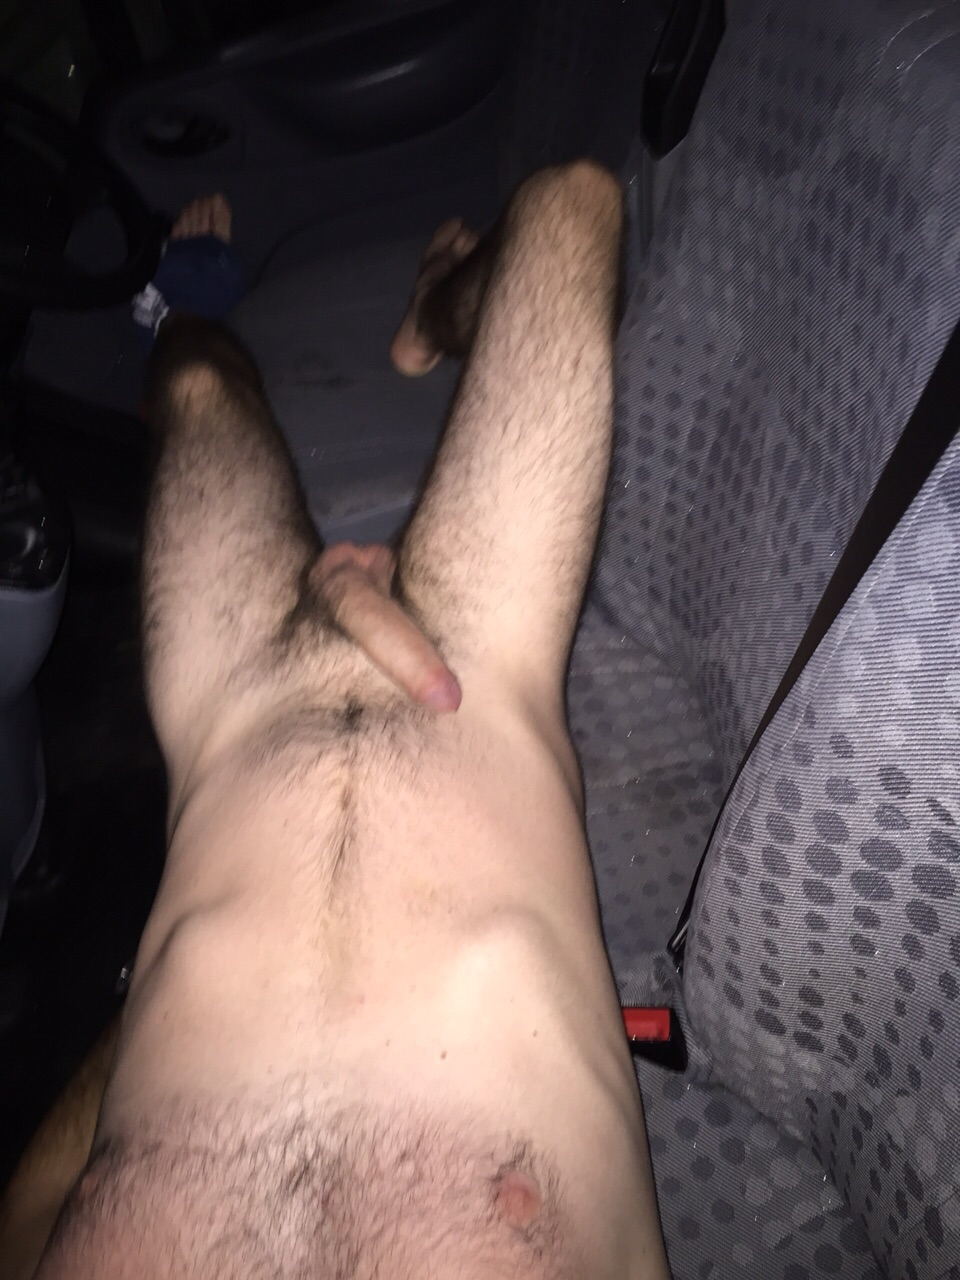 Calvert, a horny white male takes naked selfies of himself in his car!